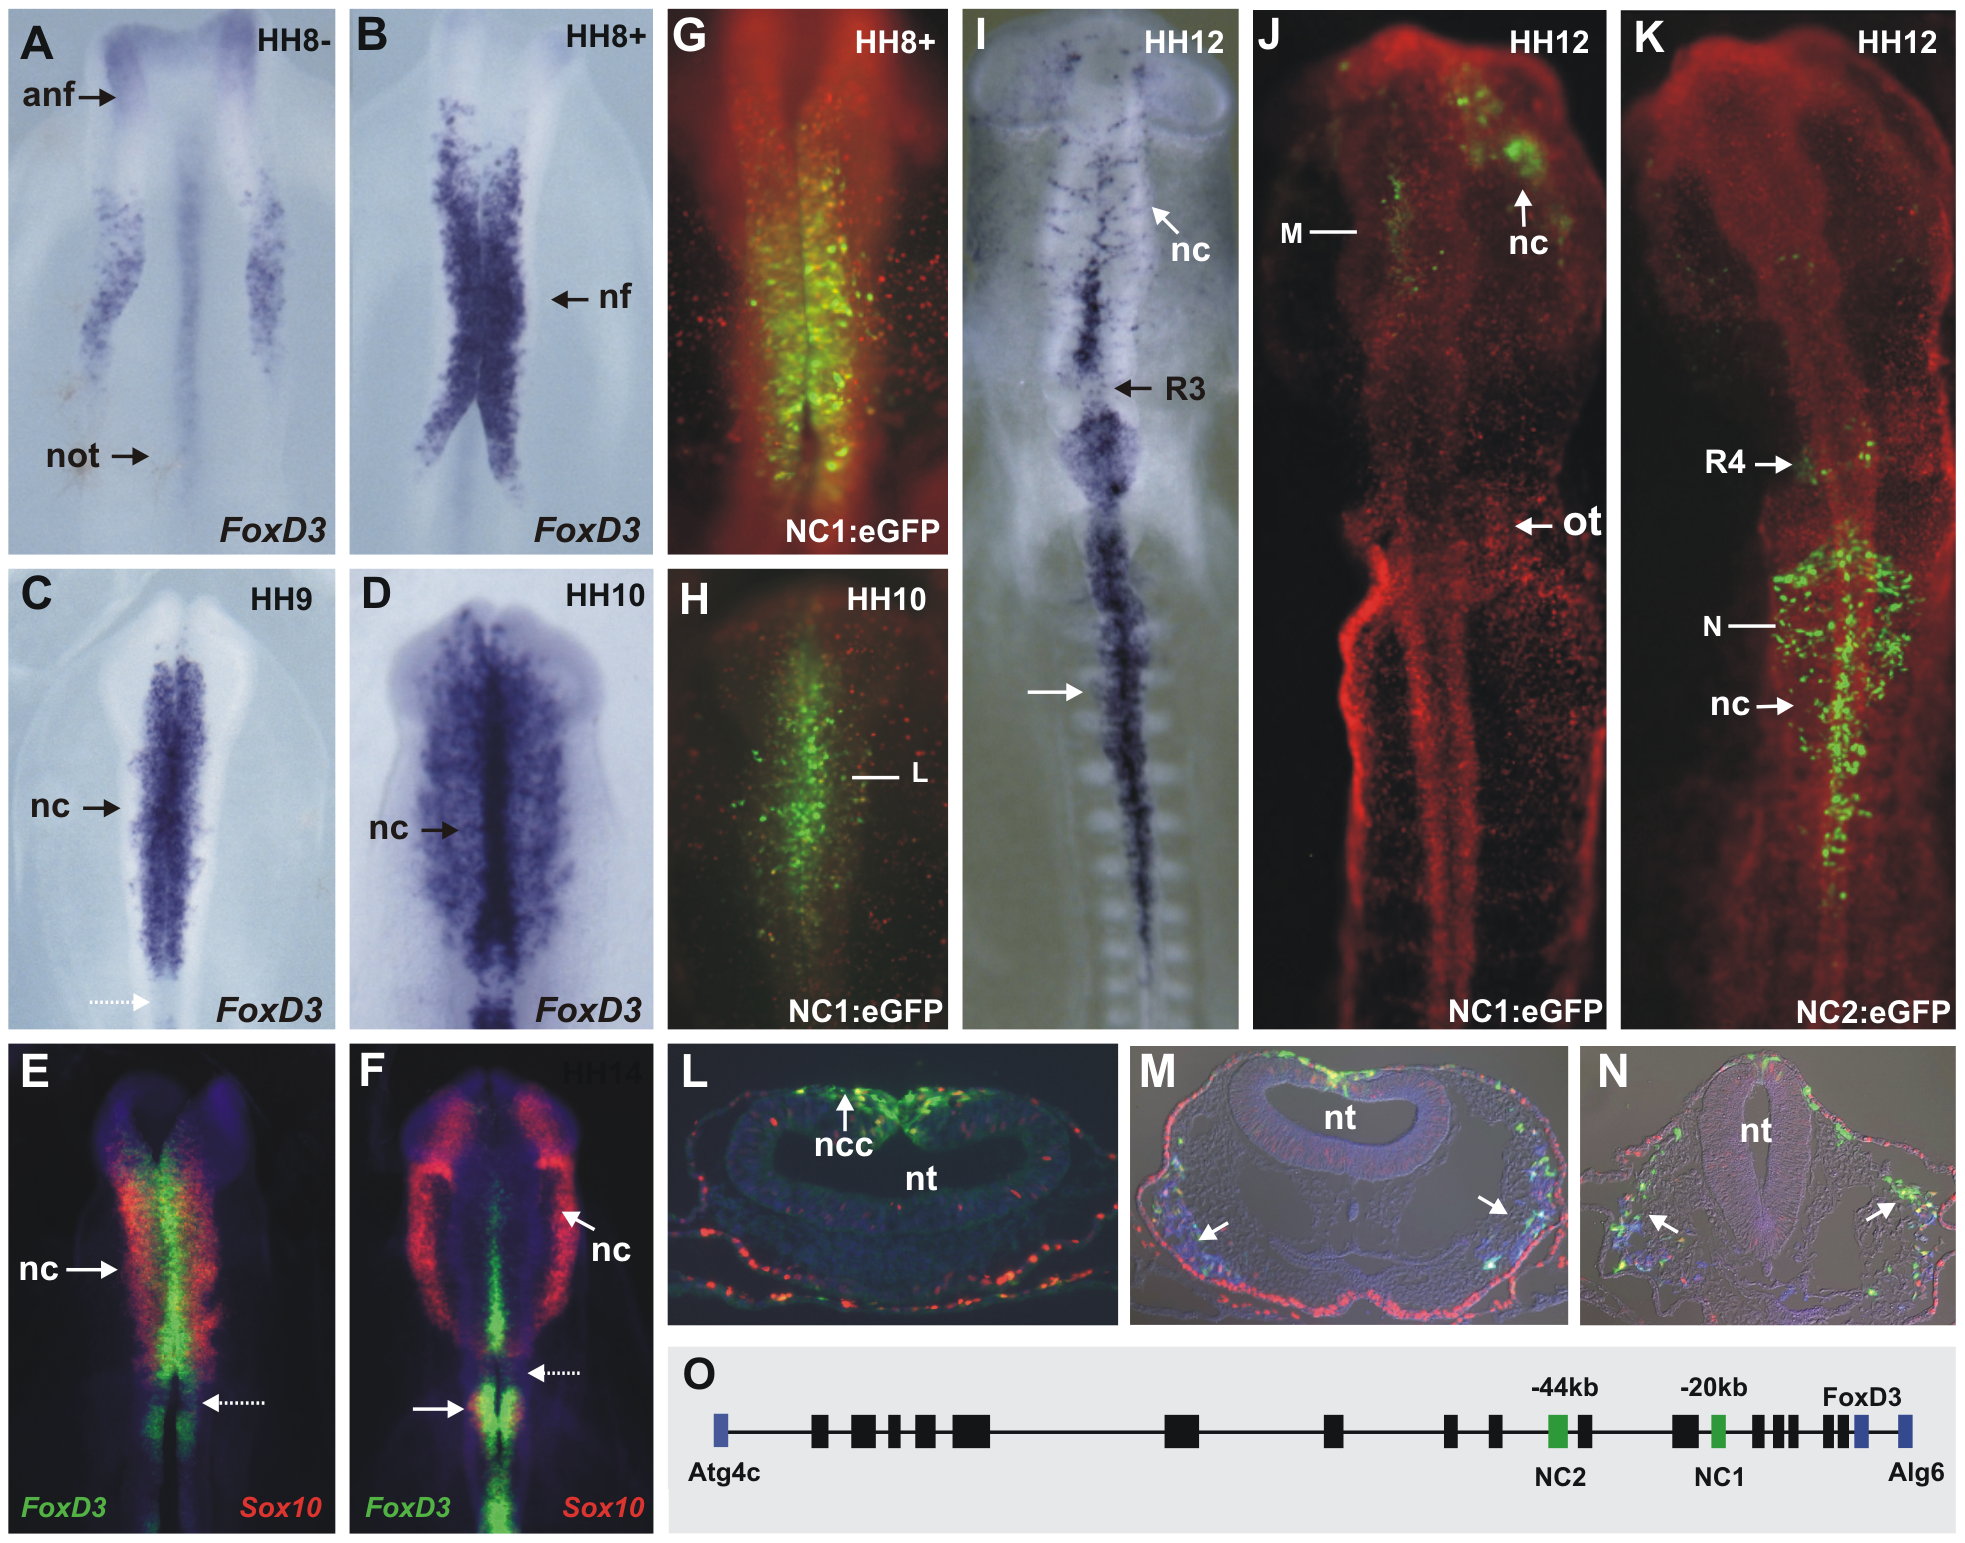 Endogenous FoxD3 in the neural crest is reflected by activity of two enhancers, NC1 and NC2.